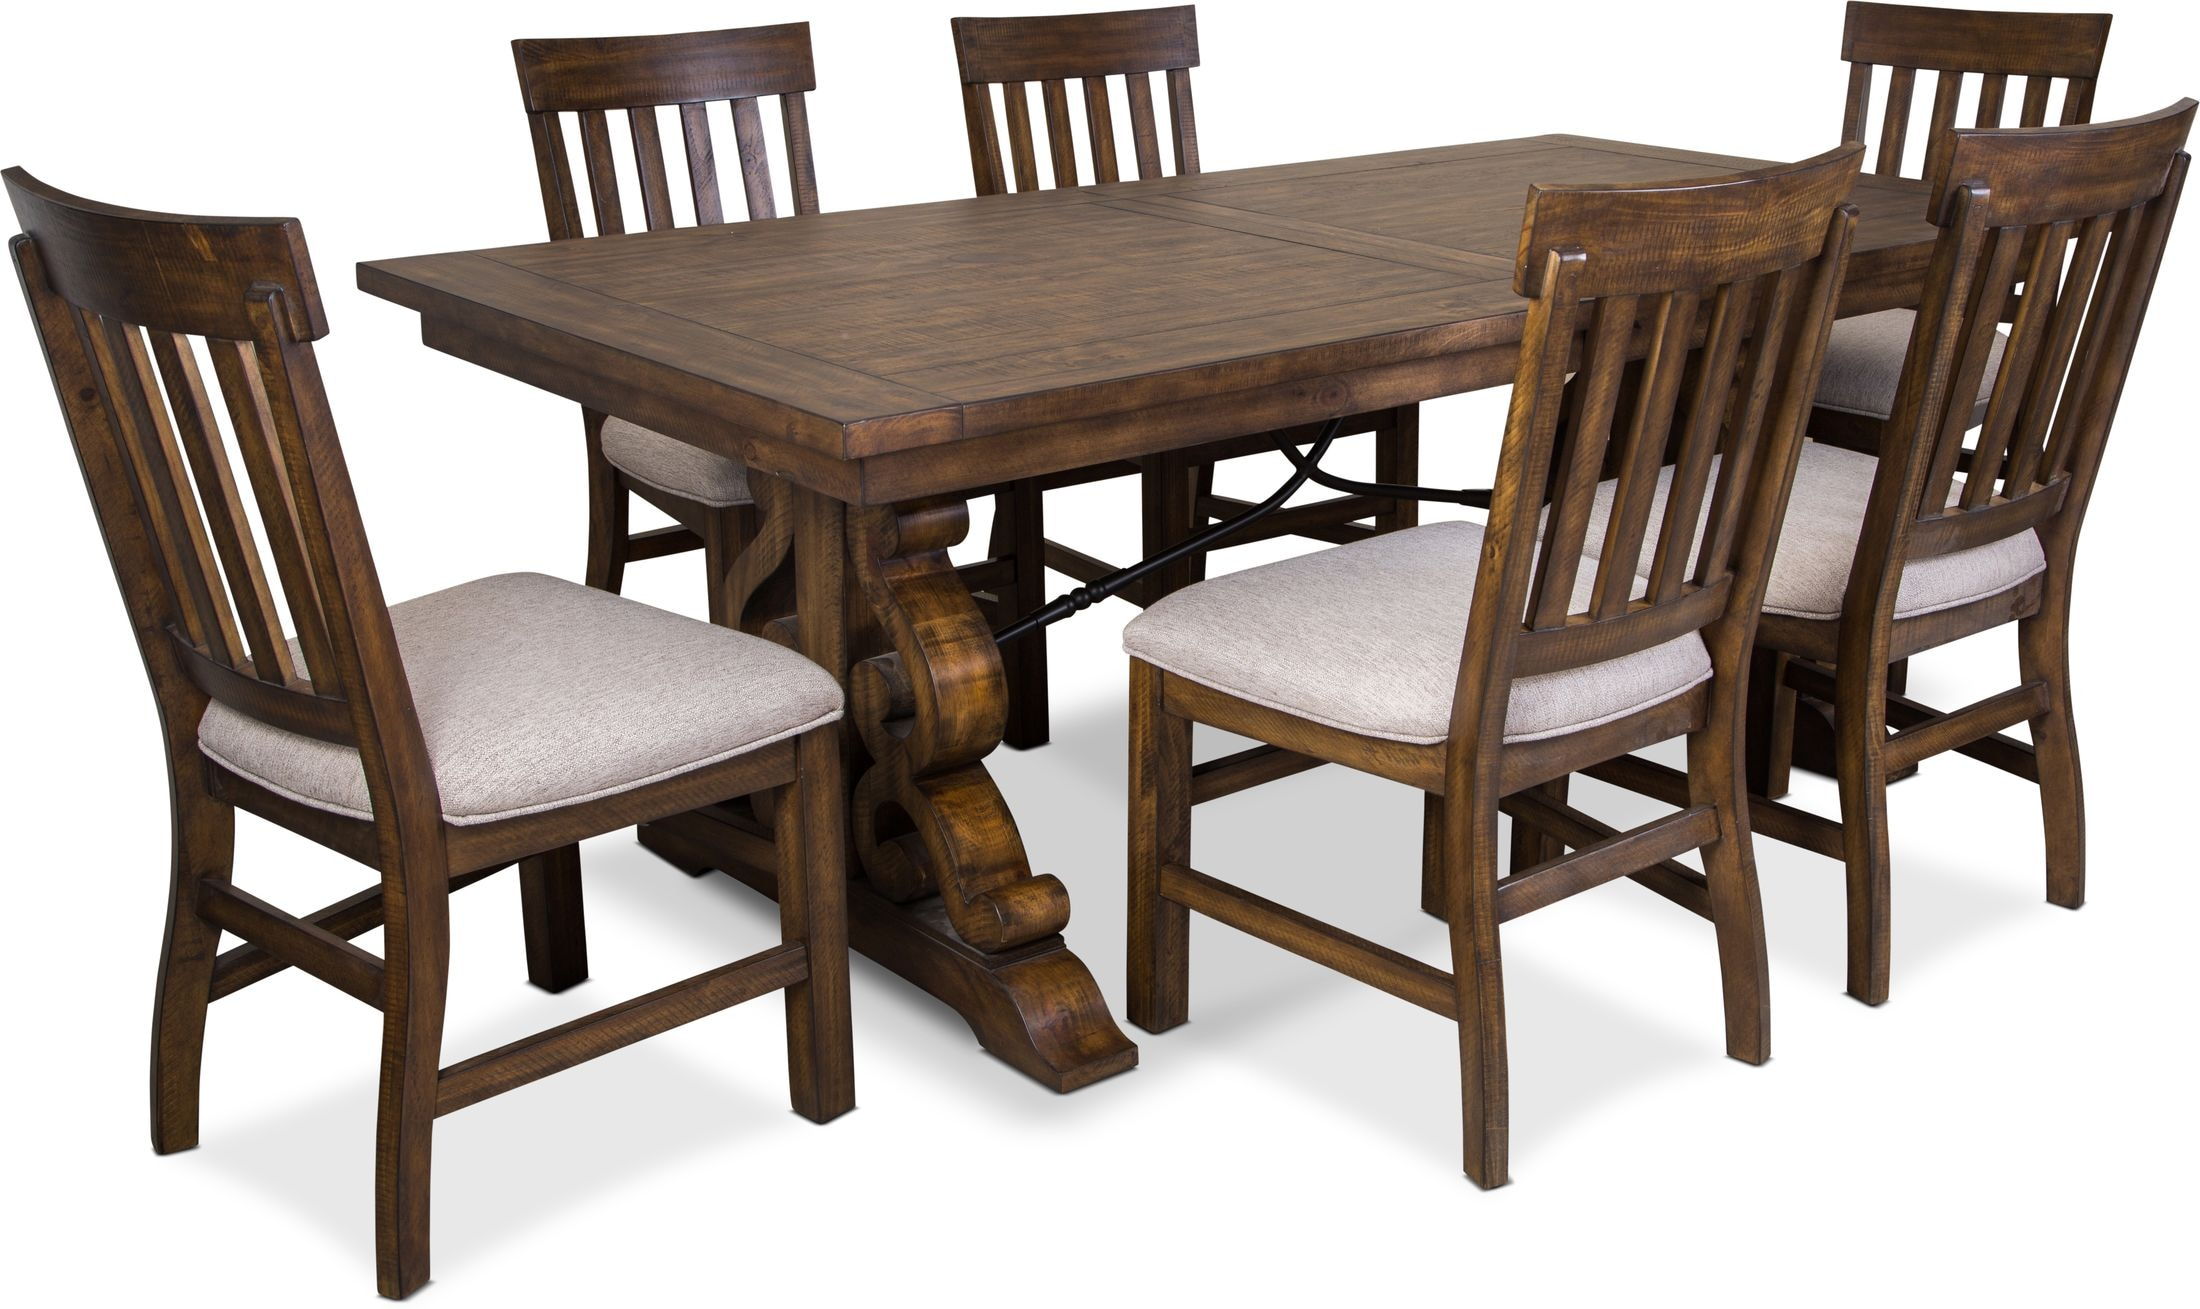 Dining Room Furniture - Charthouse Rectangular Dining Table and 6 Dining Chairs